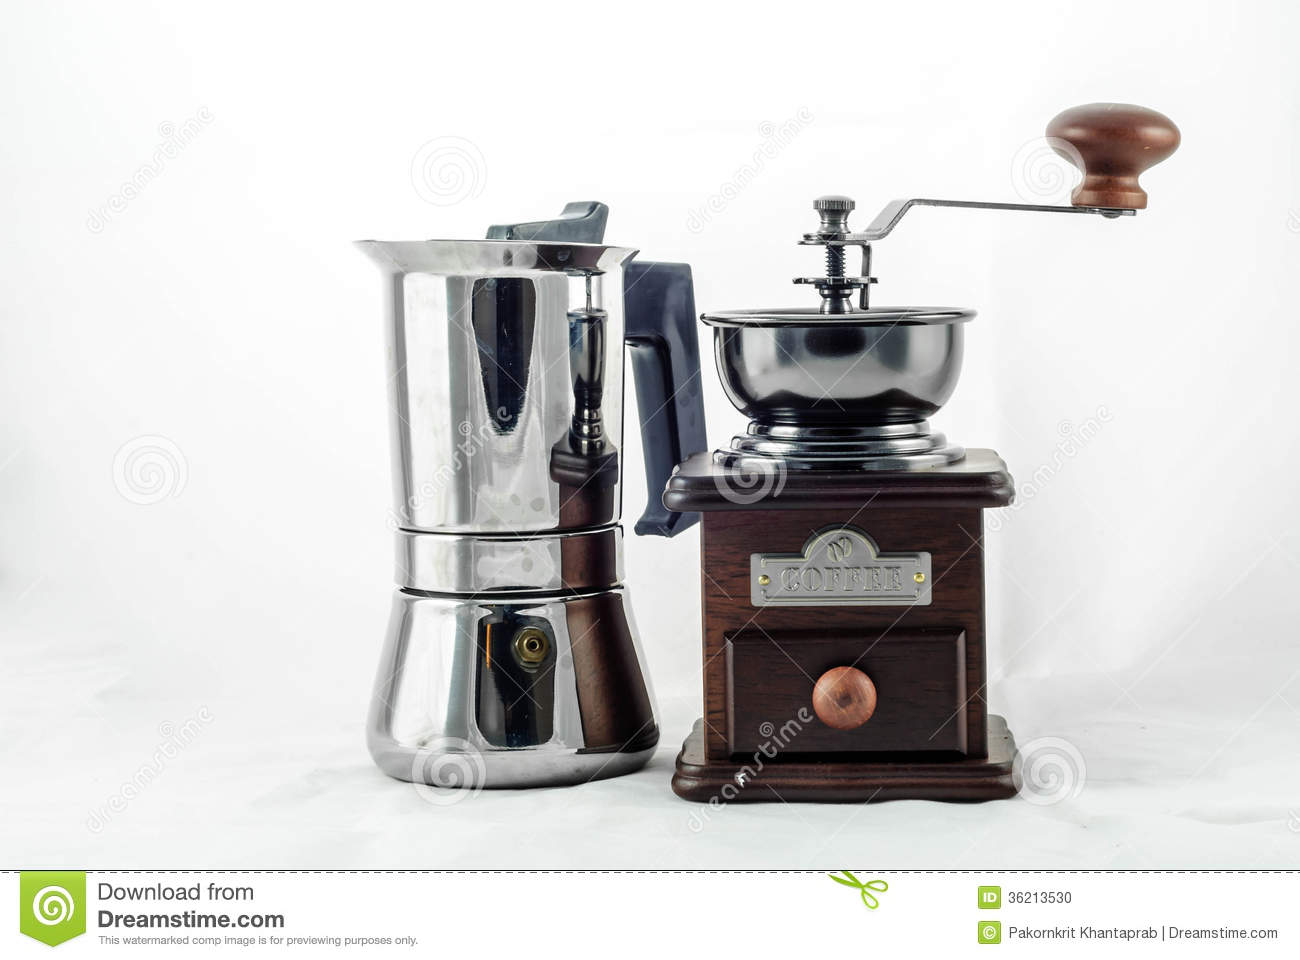 Princess Classic Coffee Maker And Grinder : Moka Pot With Grinder Stock Photo - Image: 36213530